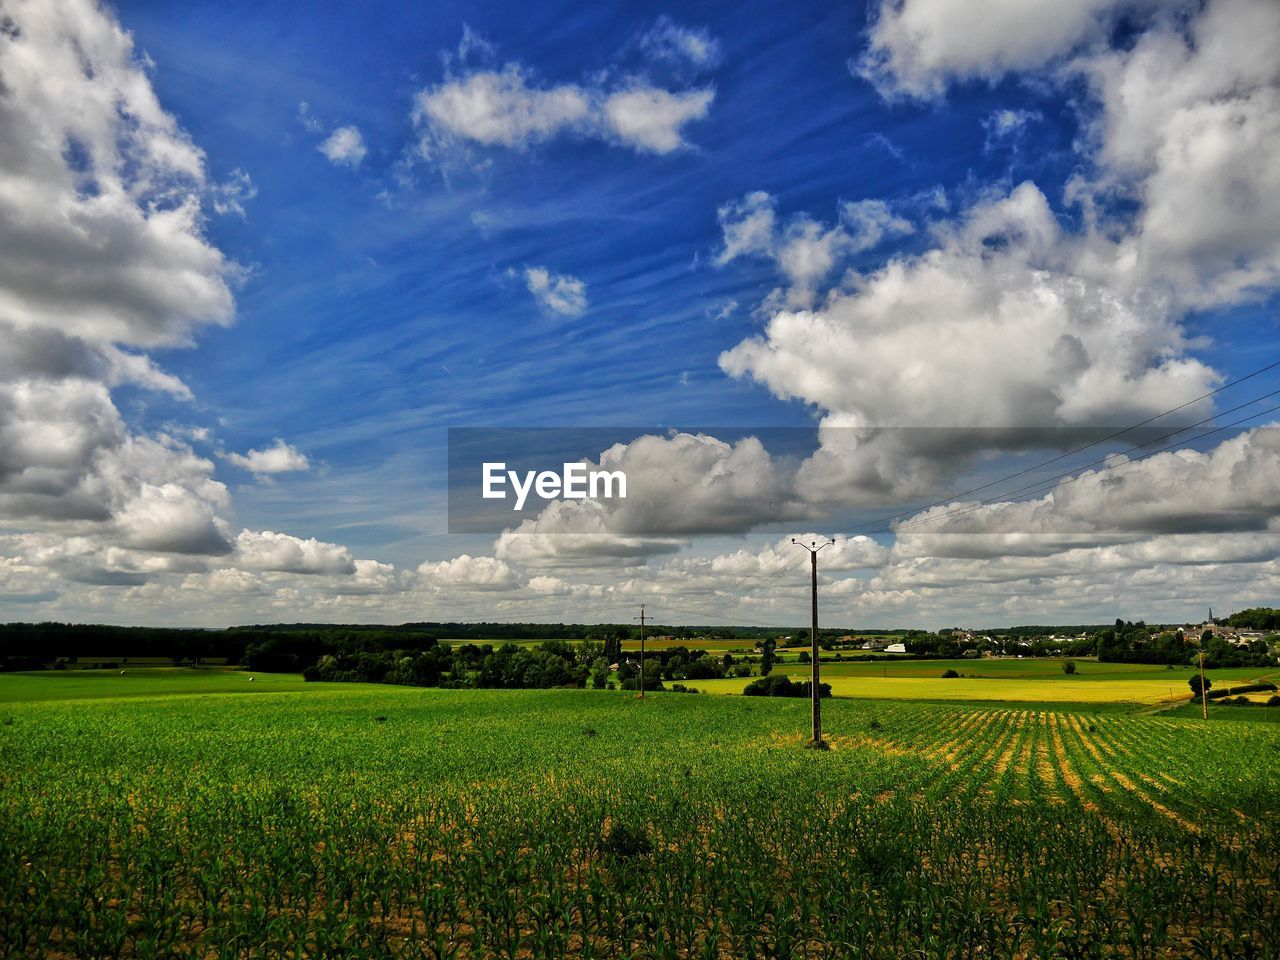 cloud - sky, sky, landscape, environment, land, field, scenics - nature, tranquility, beauty in nature, tranquil scene, plant, rural scene, agriculture, nature, green color, day, grass, no people, growth, idyllic, outdoors